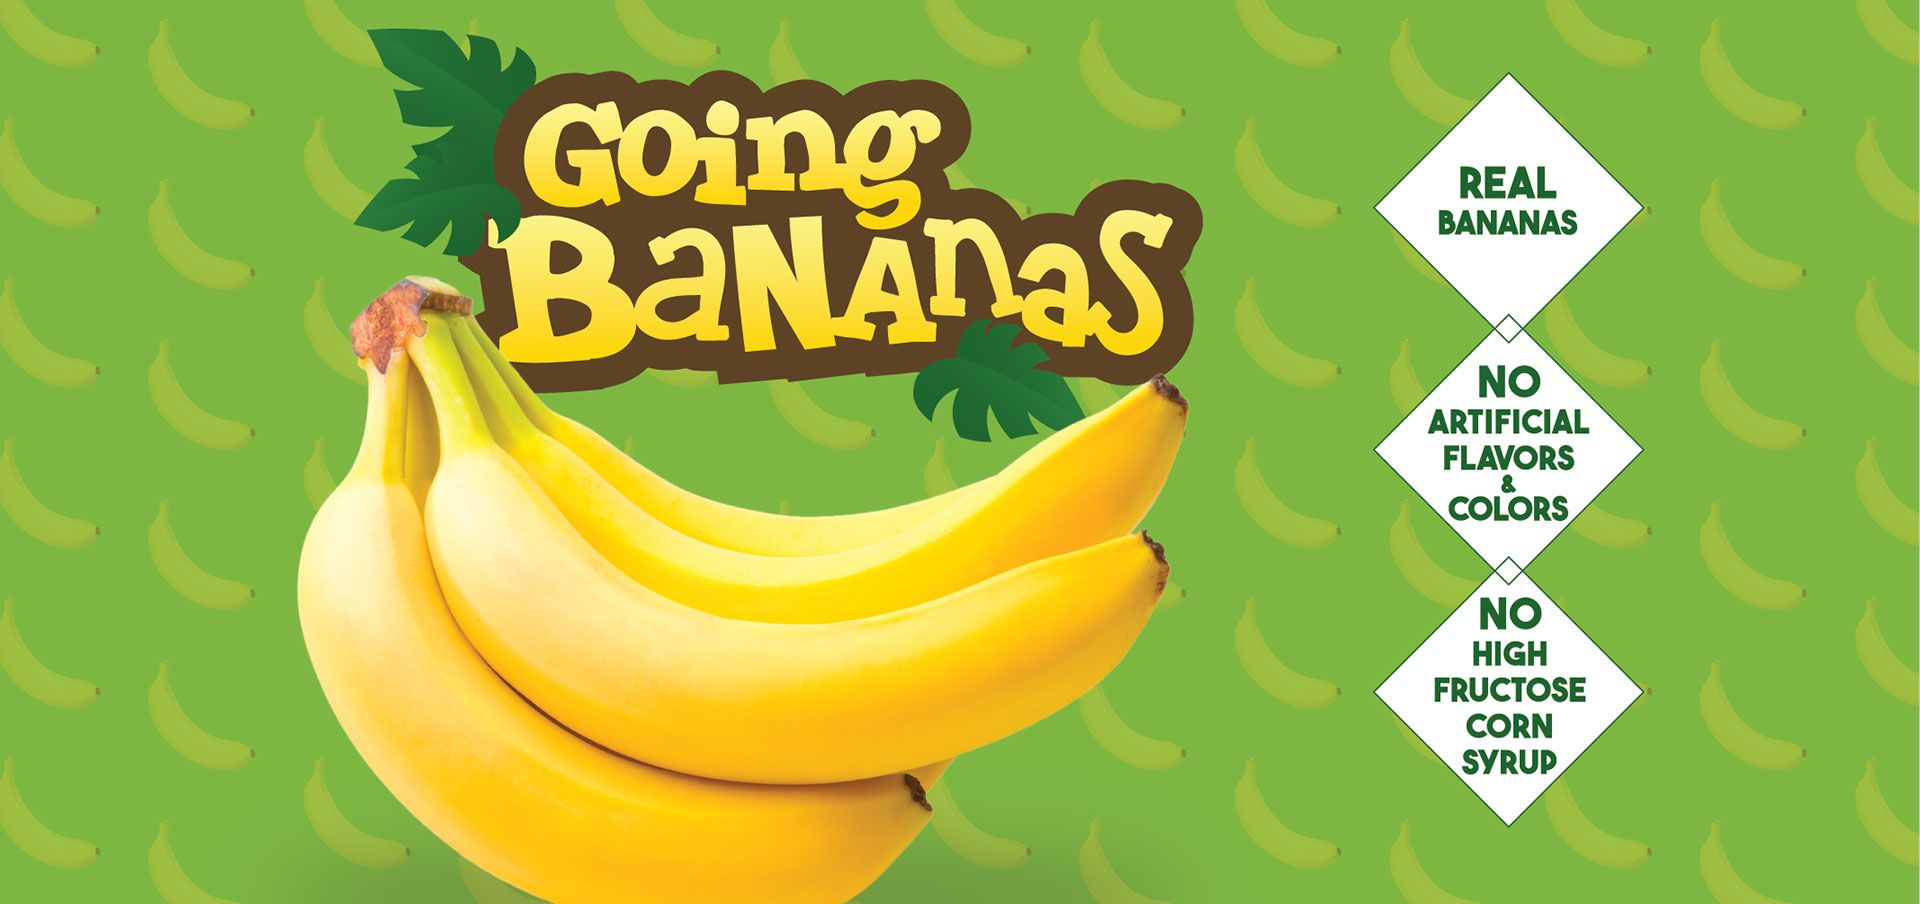 going bananas label image